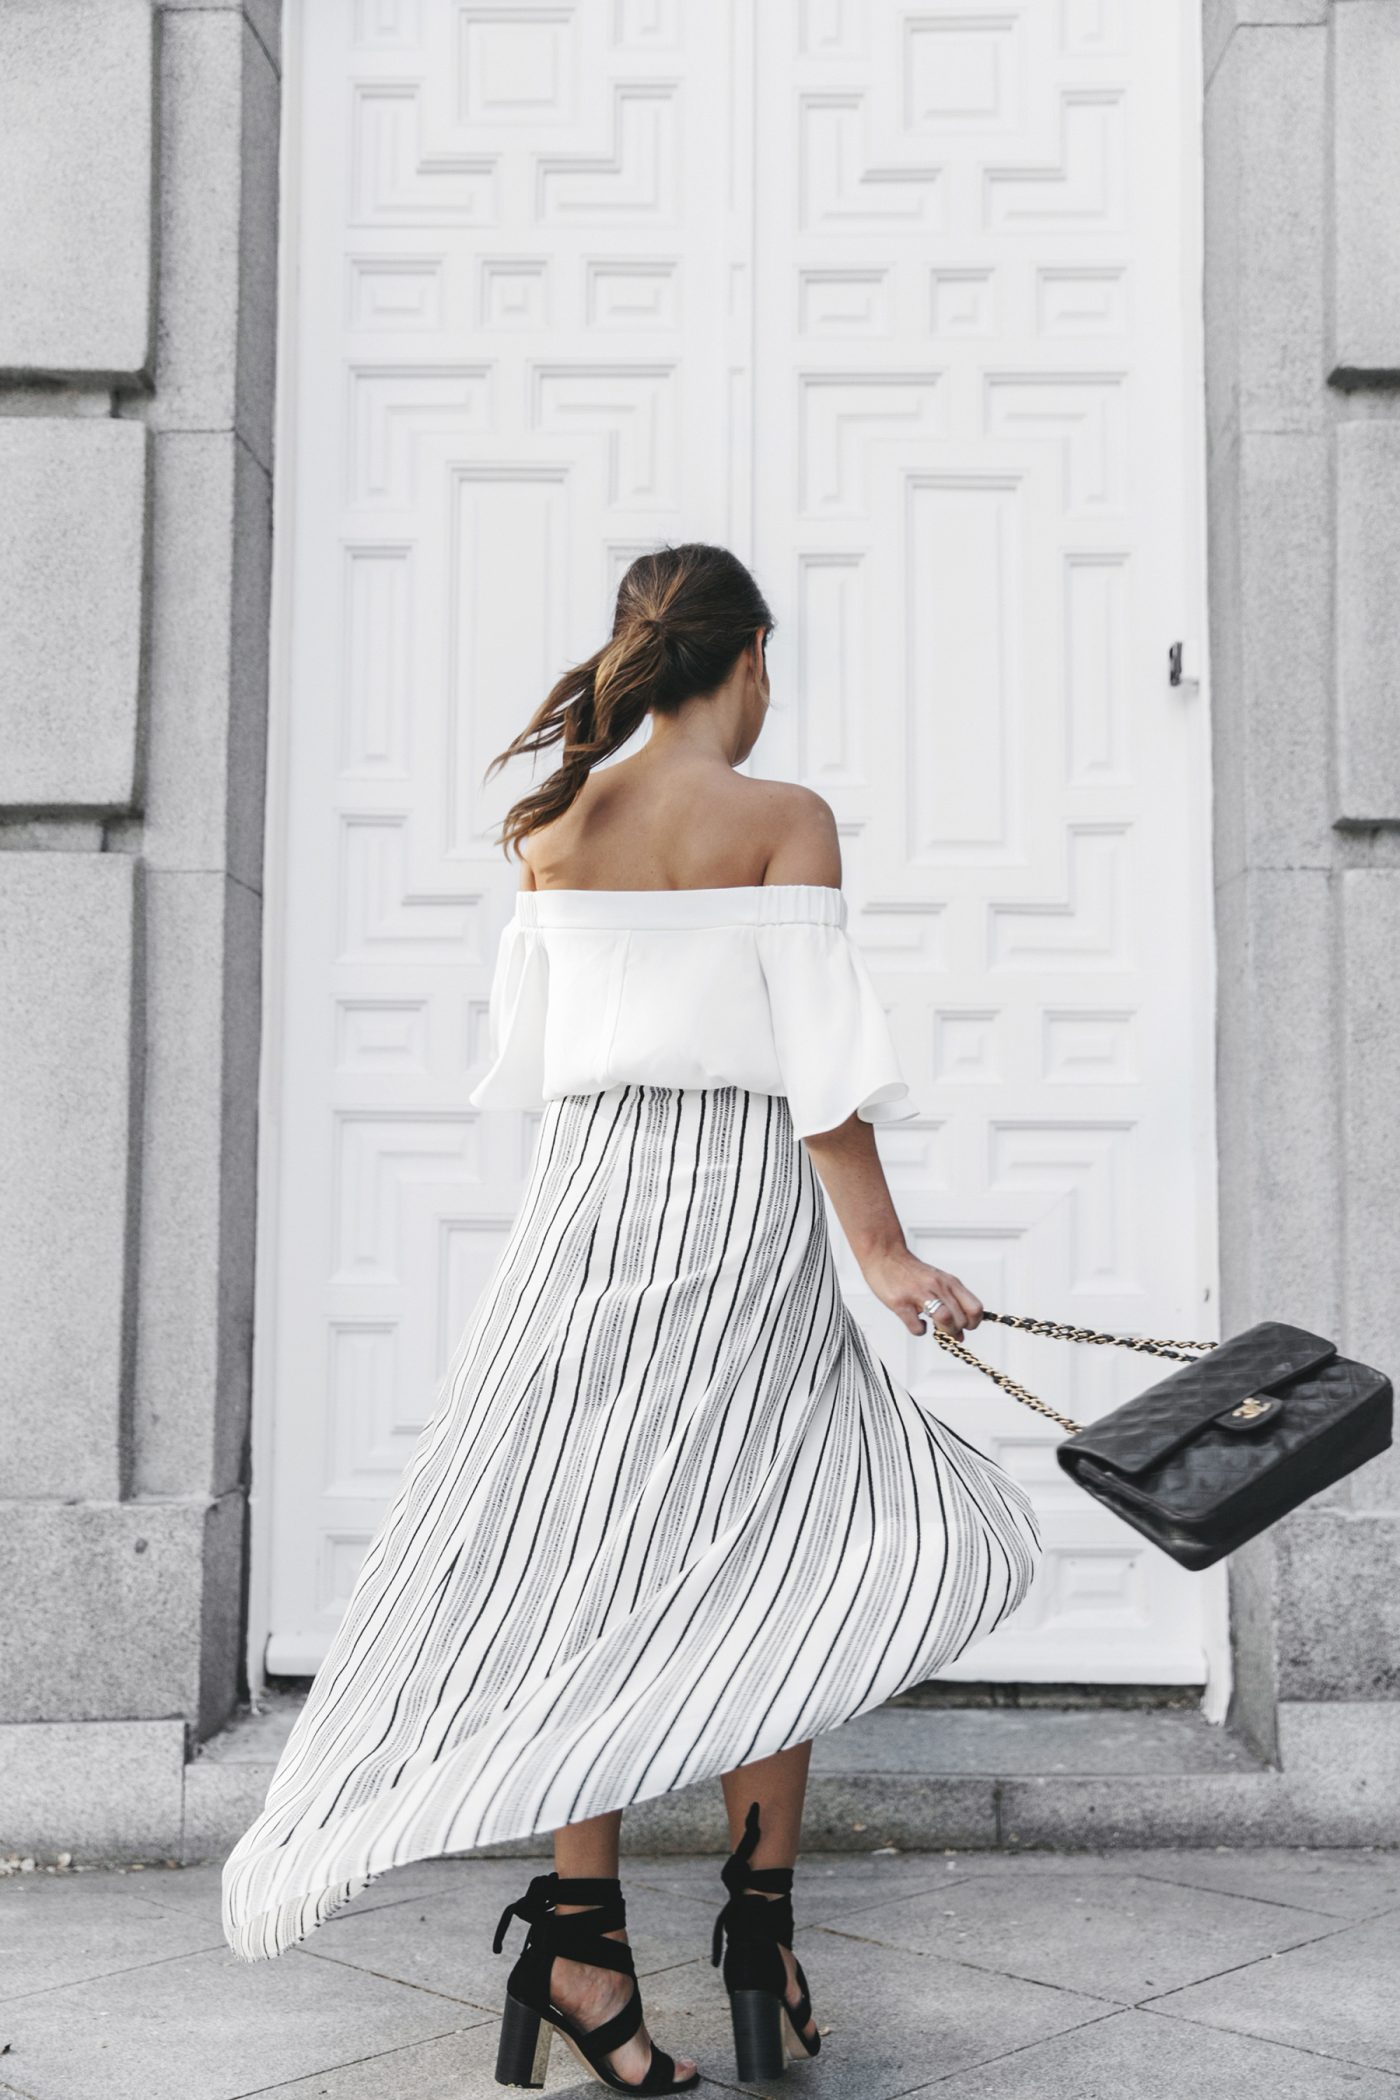 River_Island-El_Imparcial-Striped_SKirt-Off_Shoulders_Top-Lace_Up_Sandals-CHanel_Vintage_Bag-17